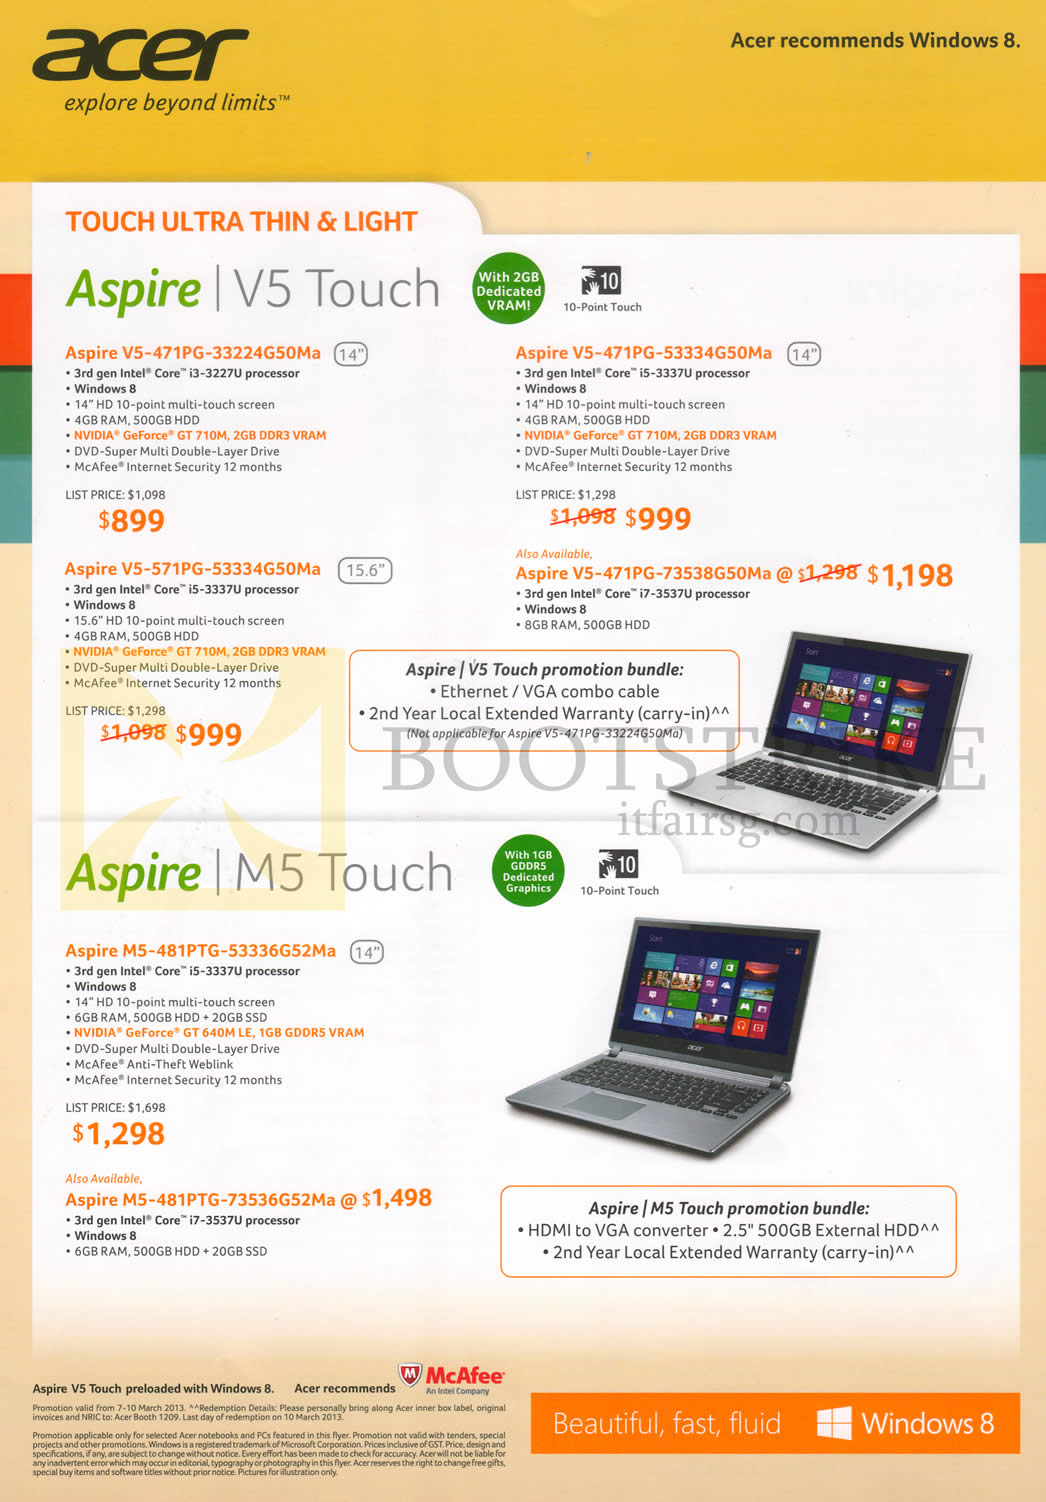 IT SHOW 2013 price list image brochure of Acer Notebooks Aspire V5-471PG-33224G50Ma, 53334G50Ma, 73538G50Ma, V5-571PG-53334G50Ma, M5-481PTG-53336G52Ma, 73536G52Ma